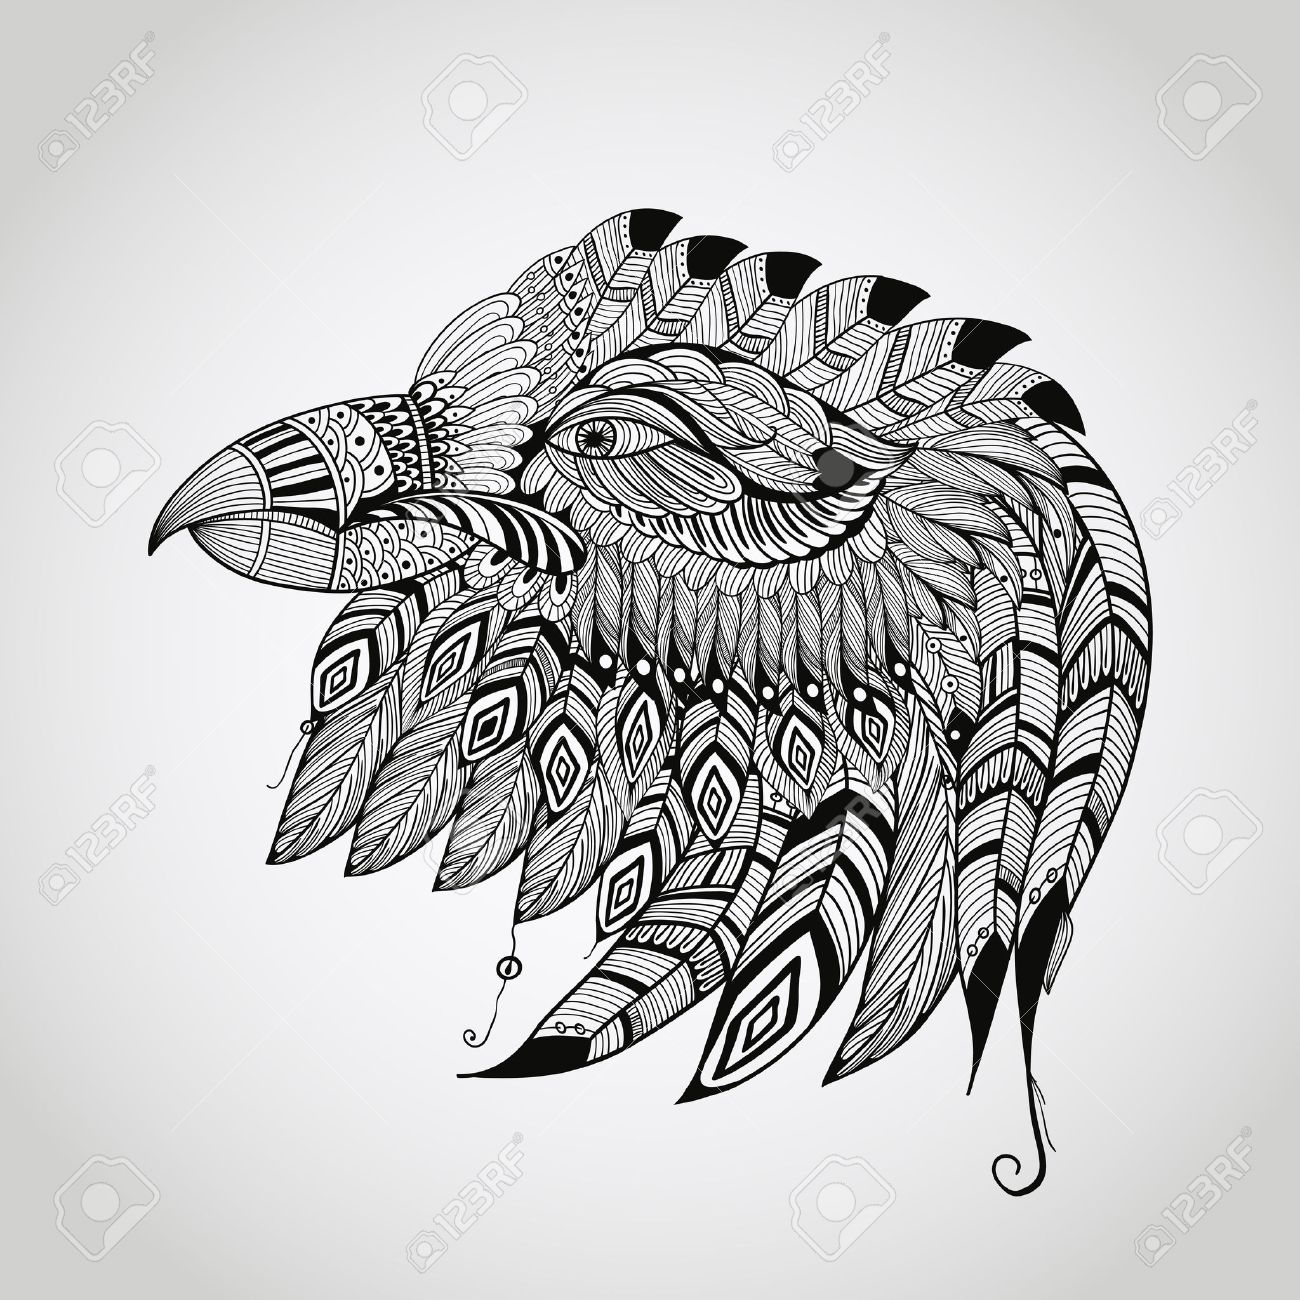 1300x1300 9,238 Raven Stock Vector Illustration And Royalty Free Raven Clipart